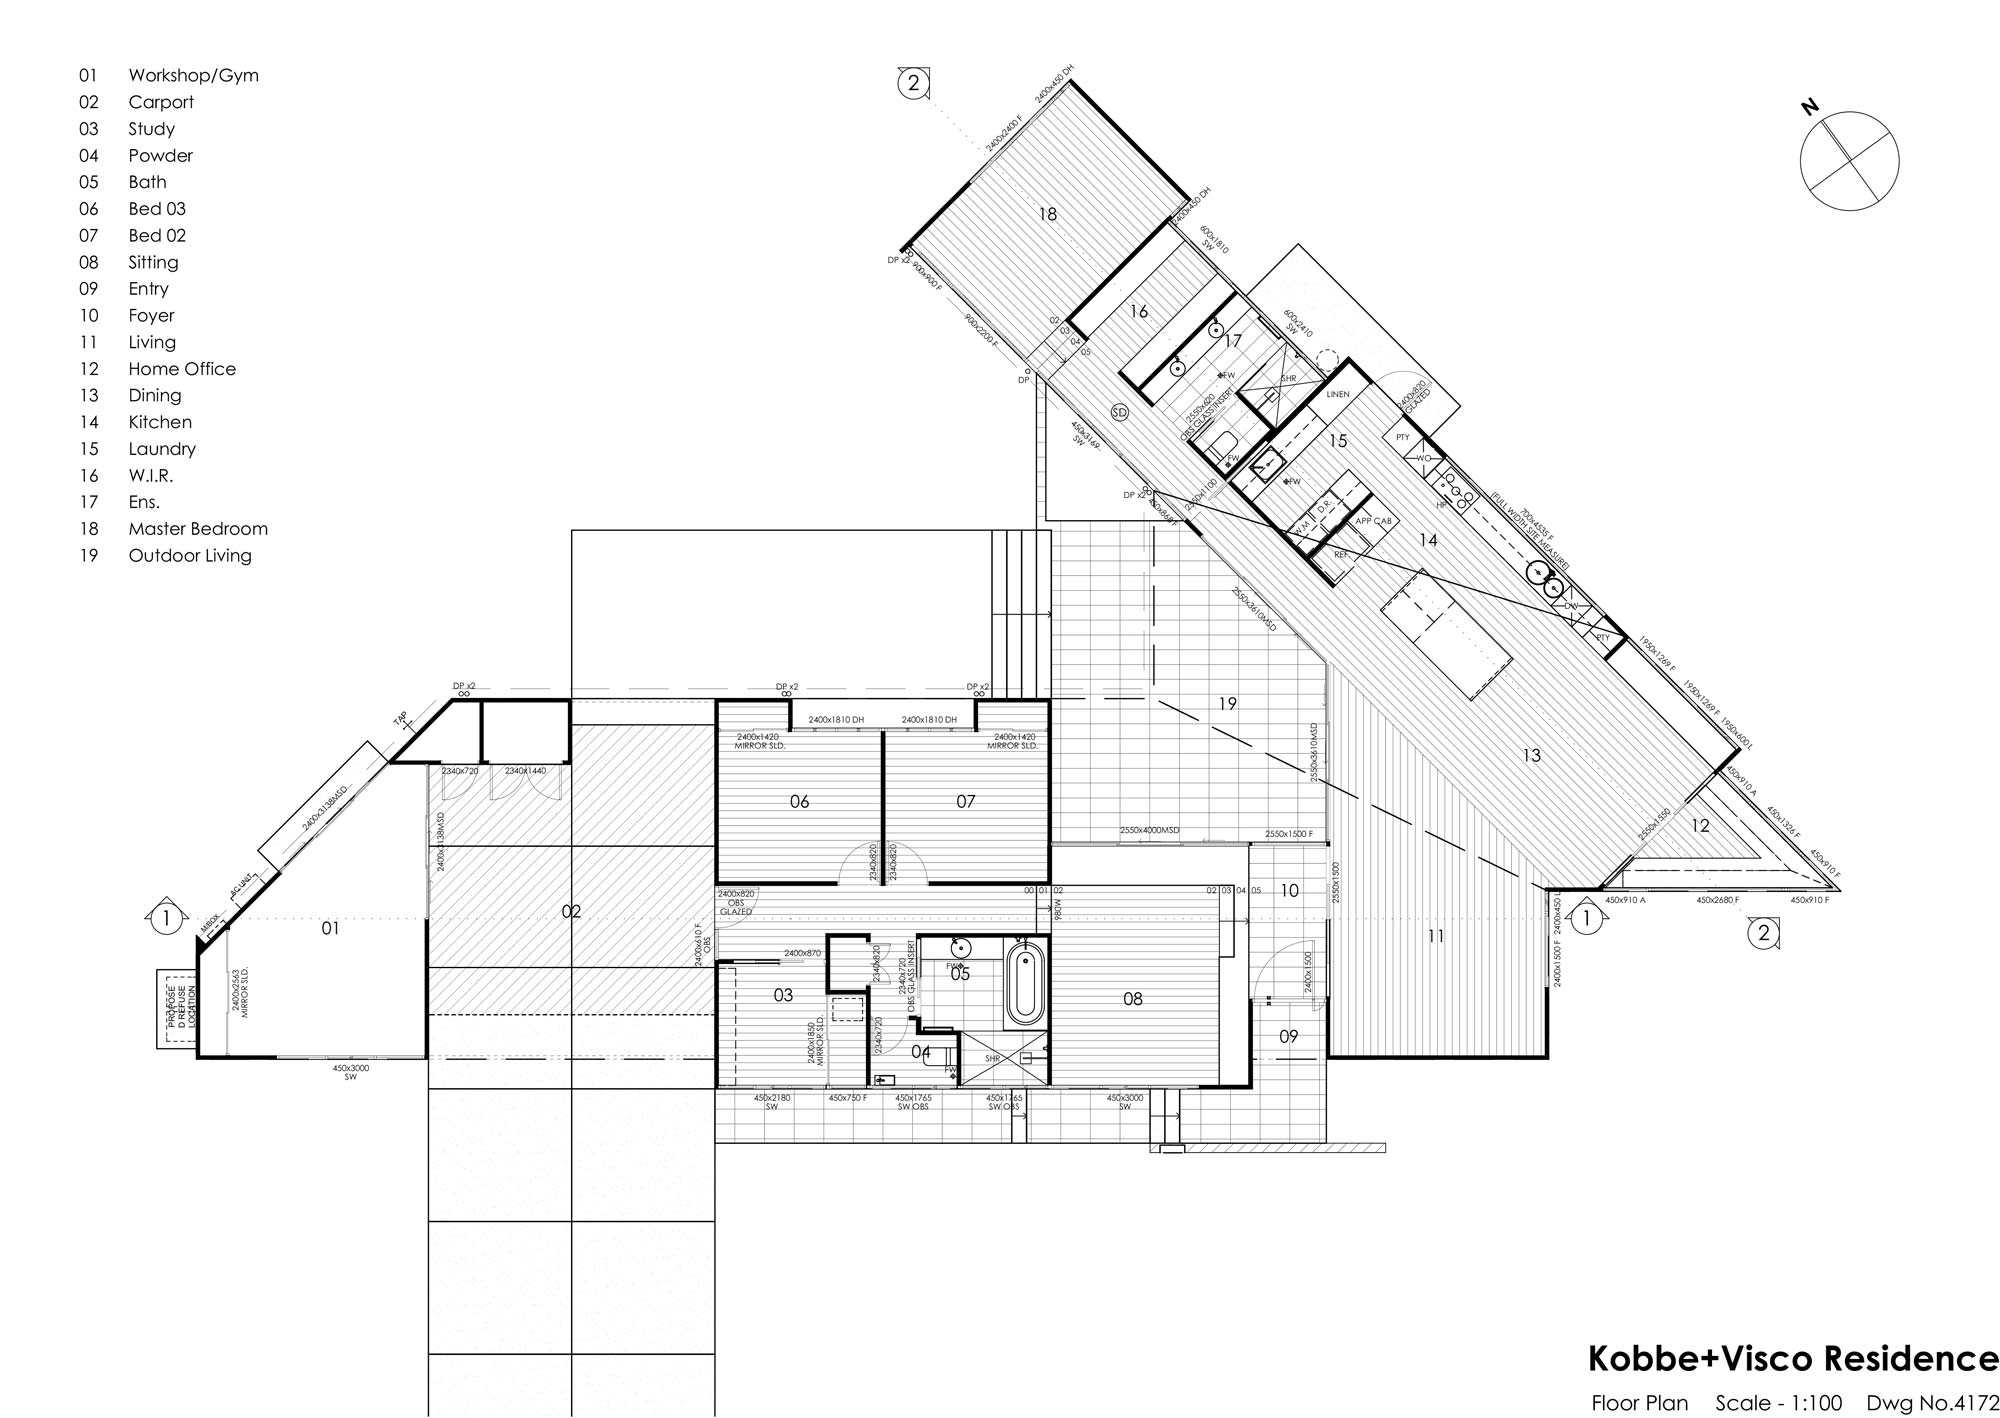 VK House - Floor Plan